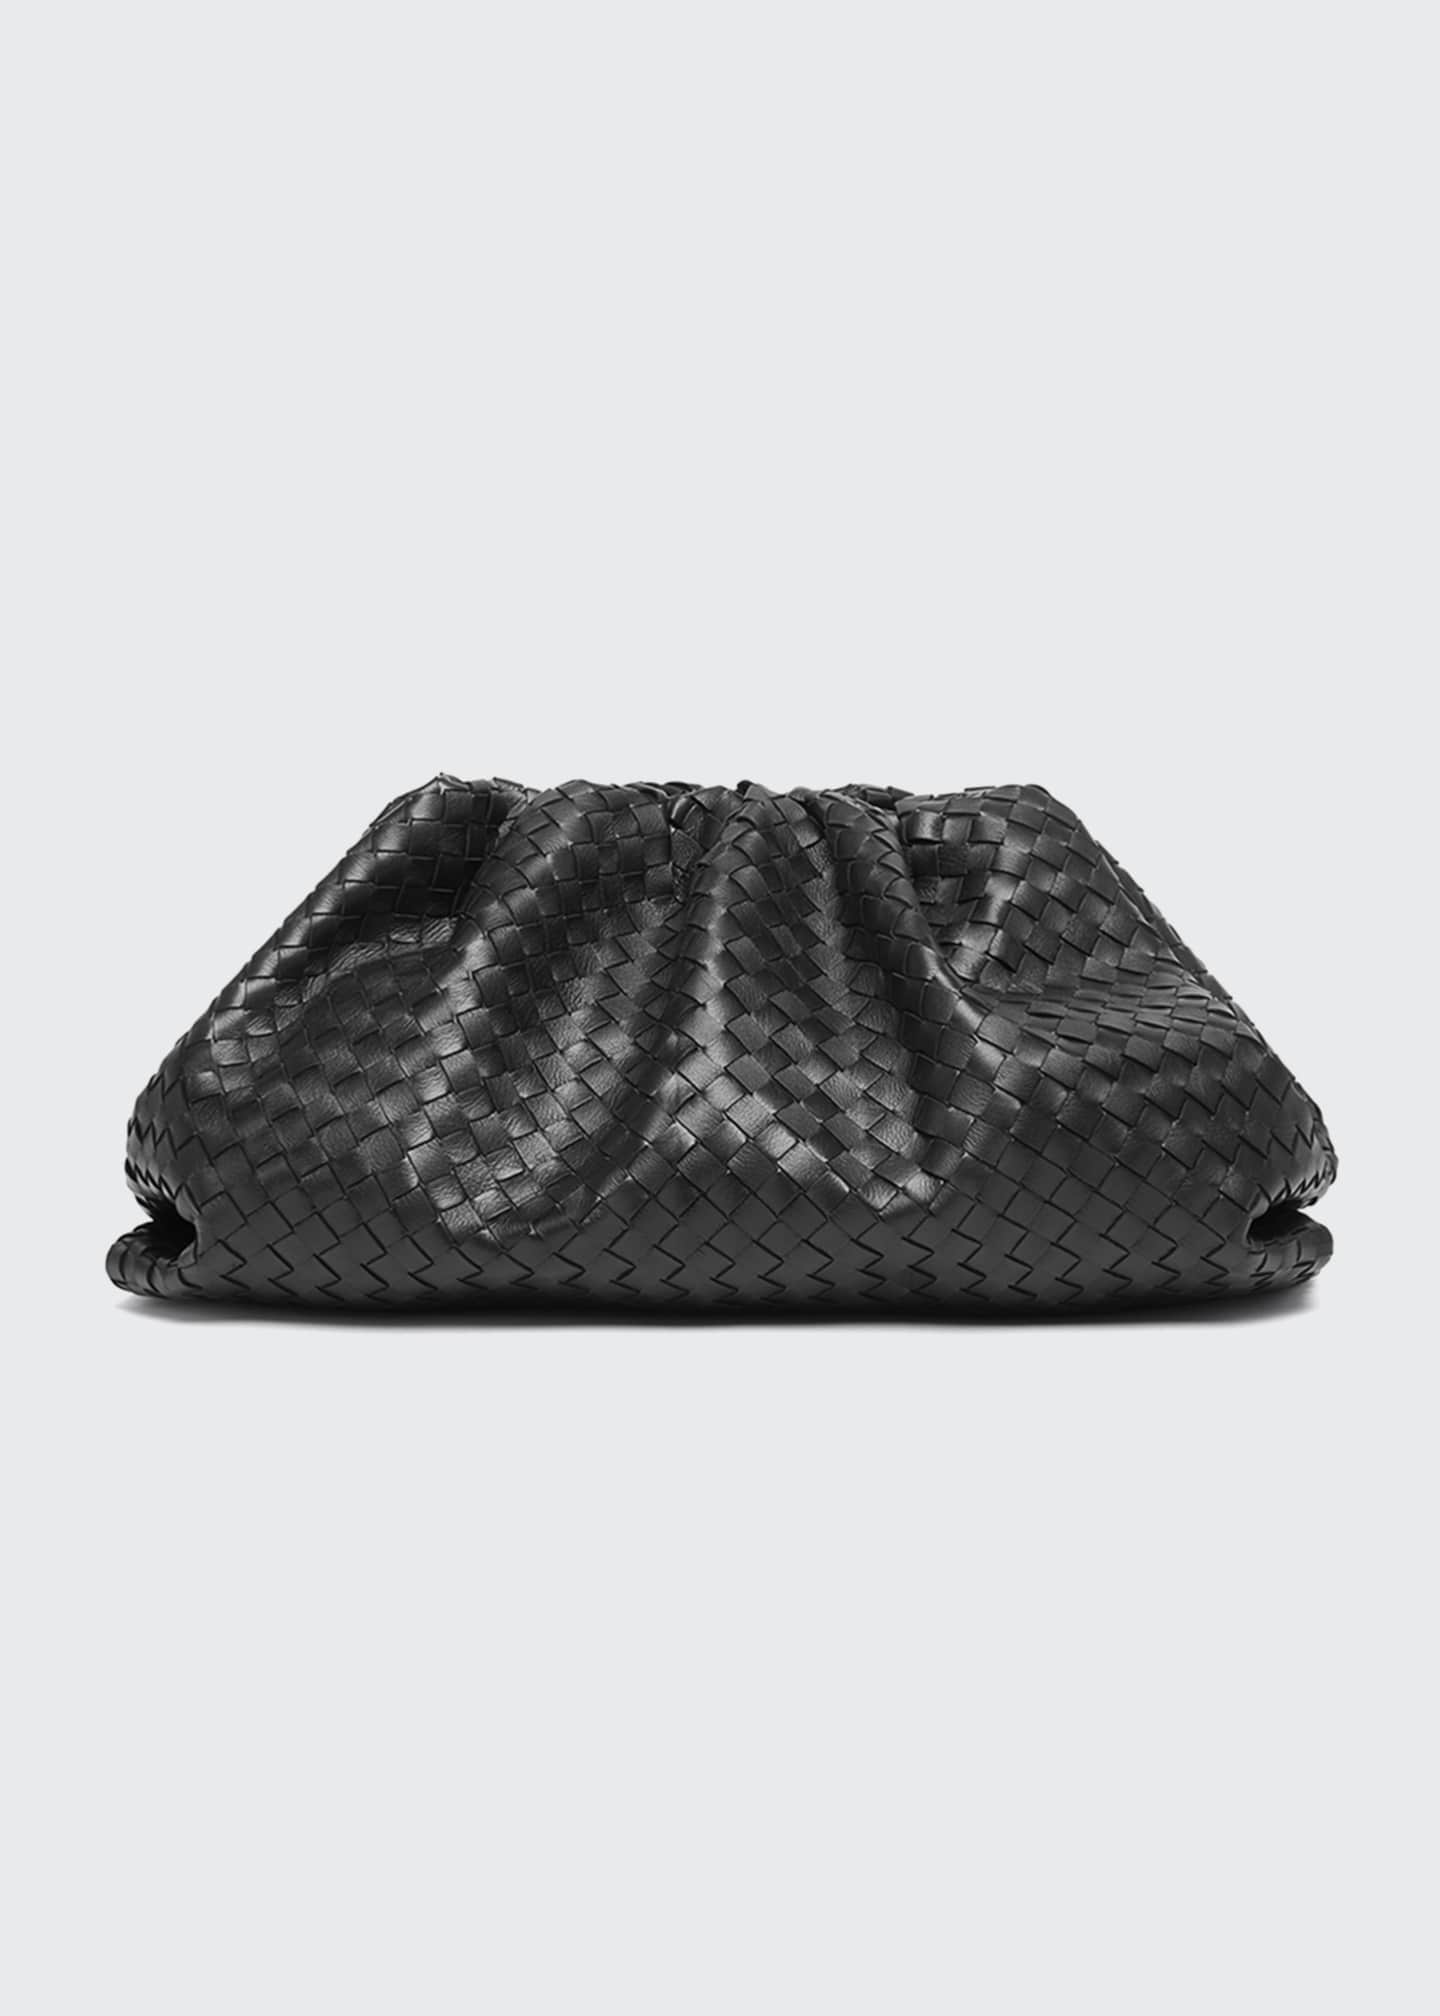 Image 1 of 5: The Pouch Intrecciato Clutch Bag